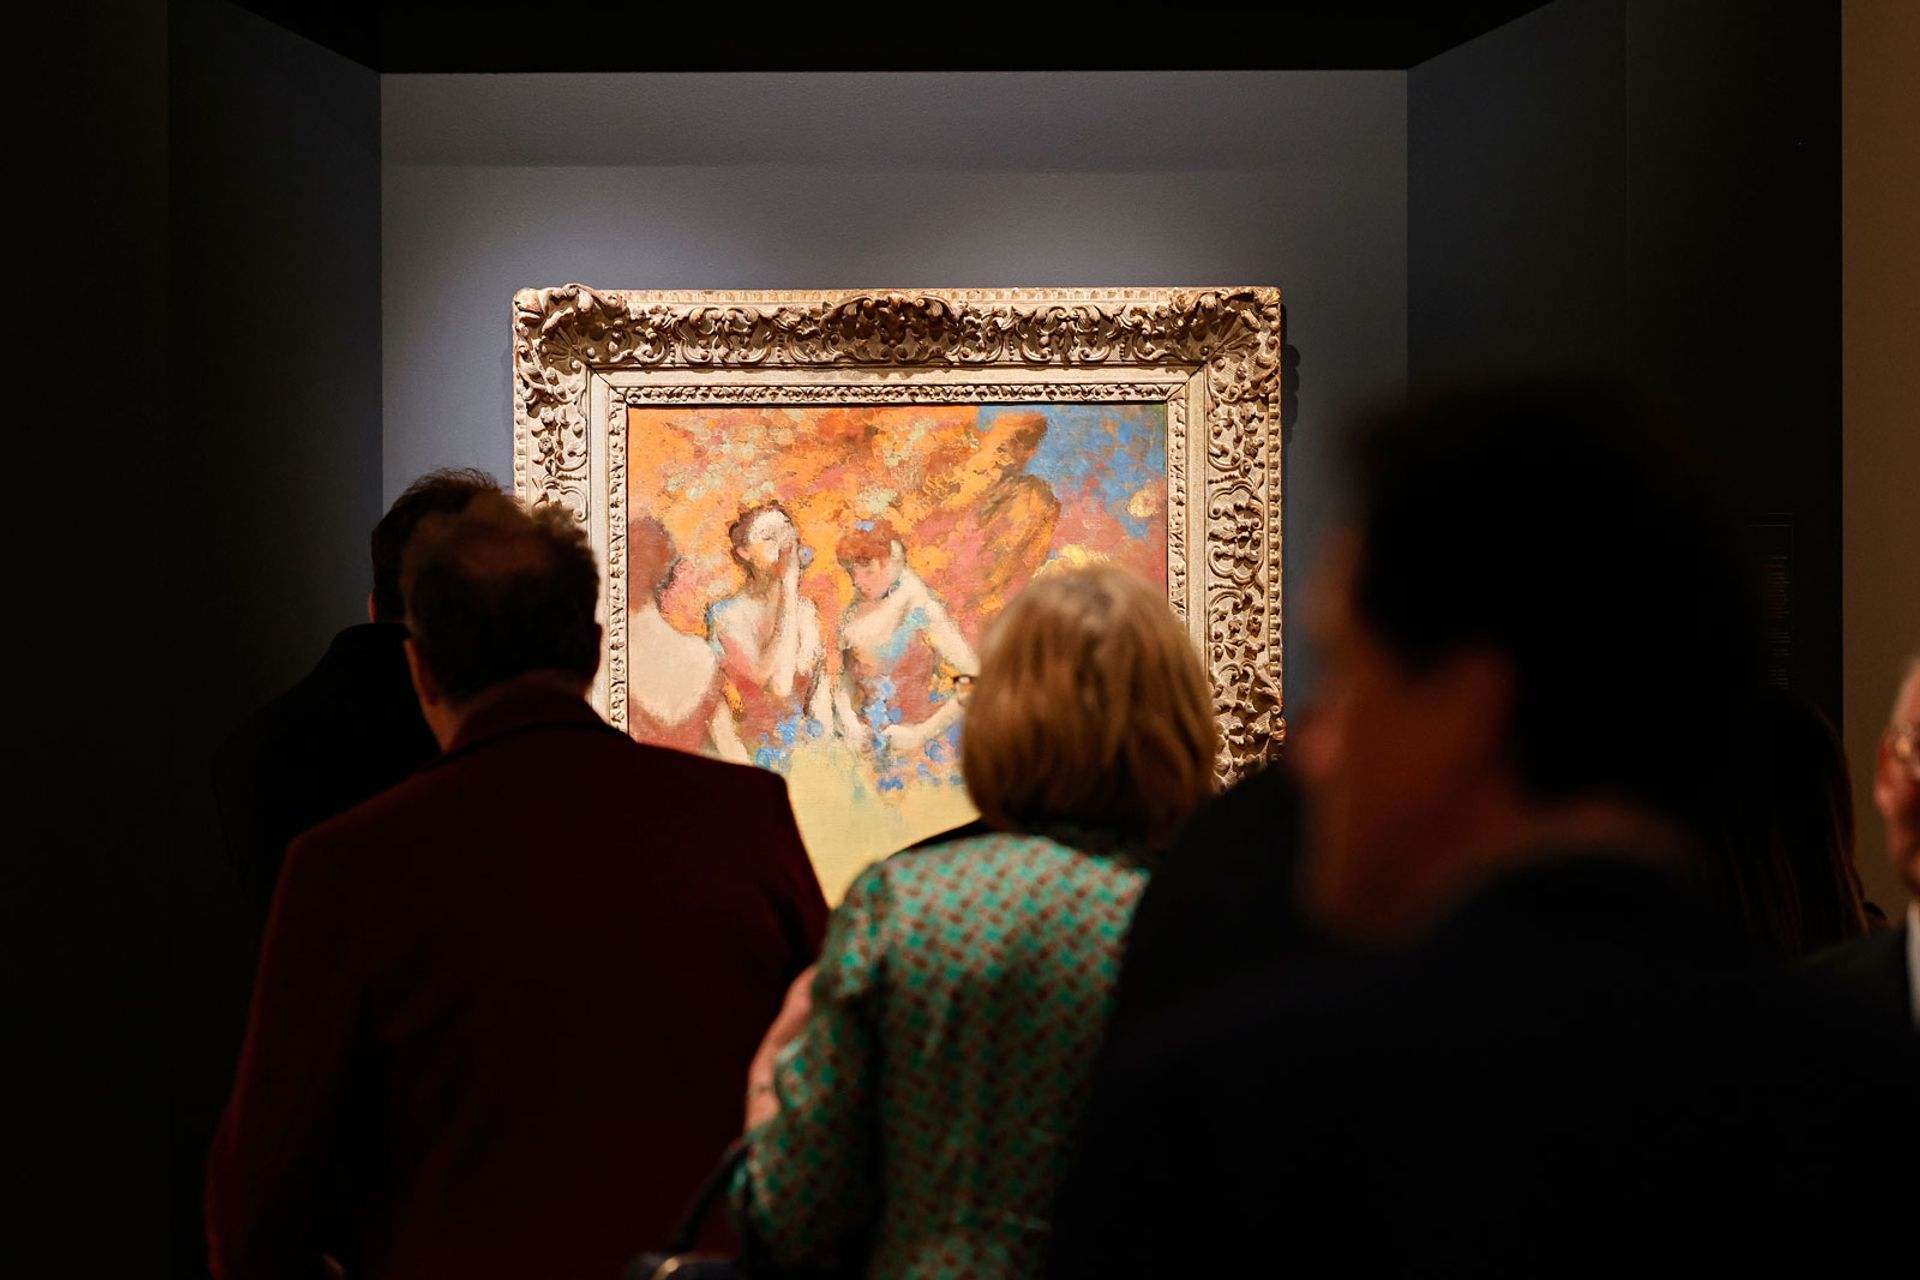 Trump's new European travel ban is causing confusion at Tefaf Maastricht, which closed early due to coronavirus Courtesy of Tefaf